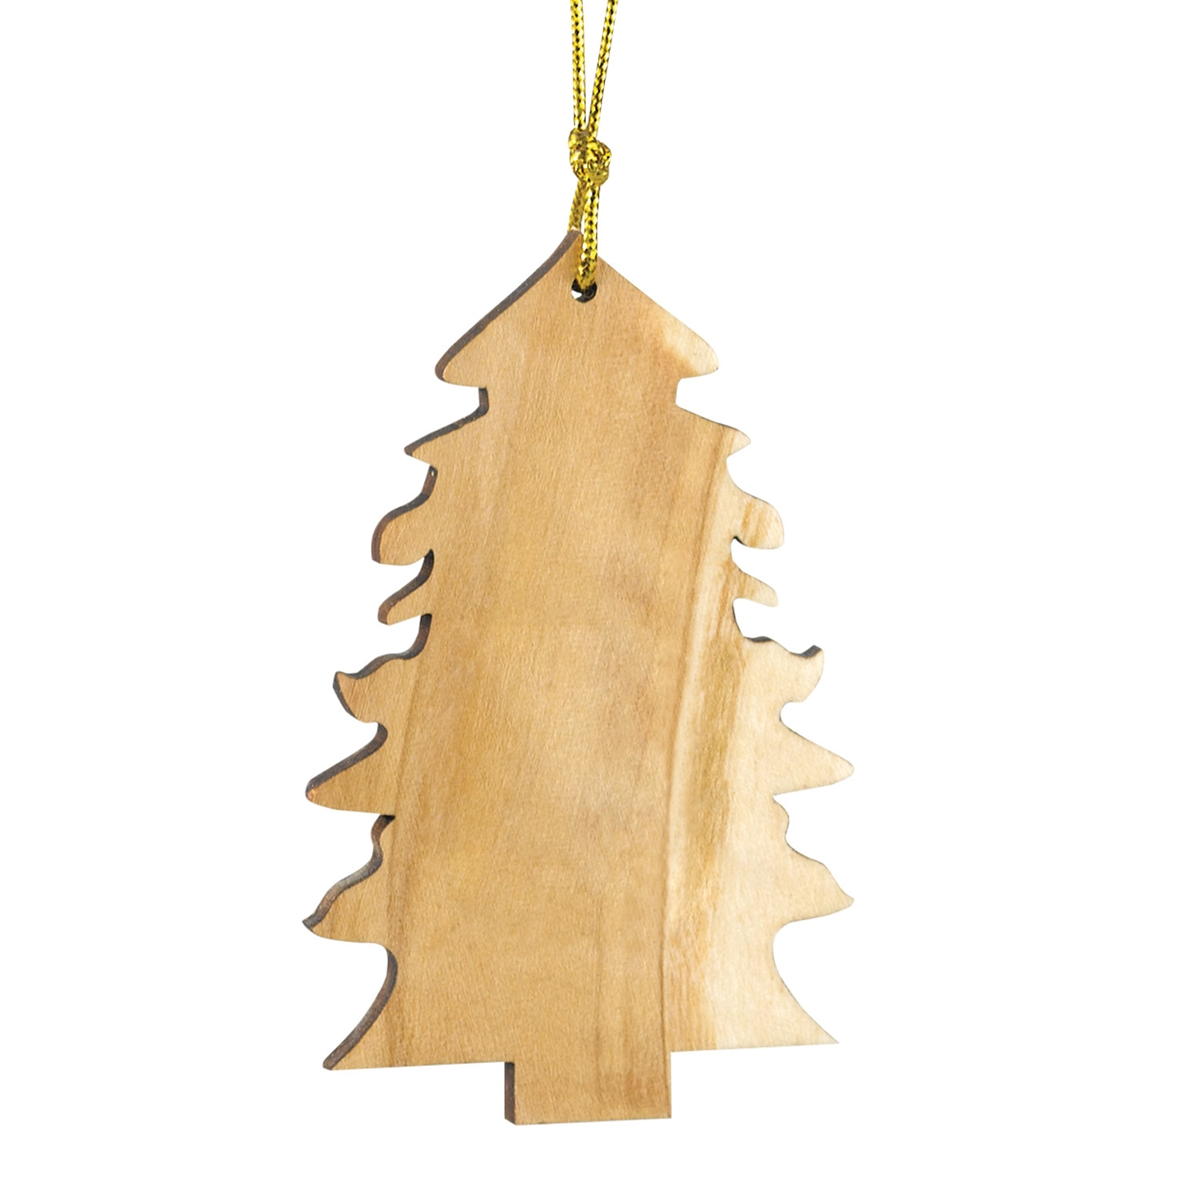 Olive Wood Tree Ornament